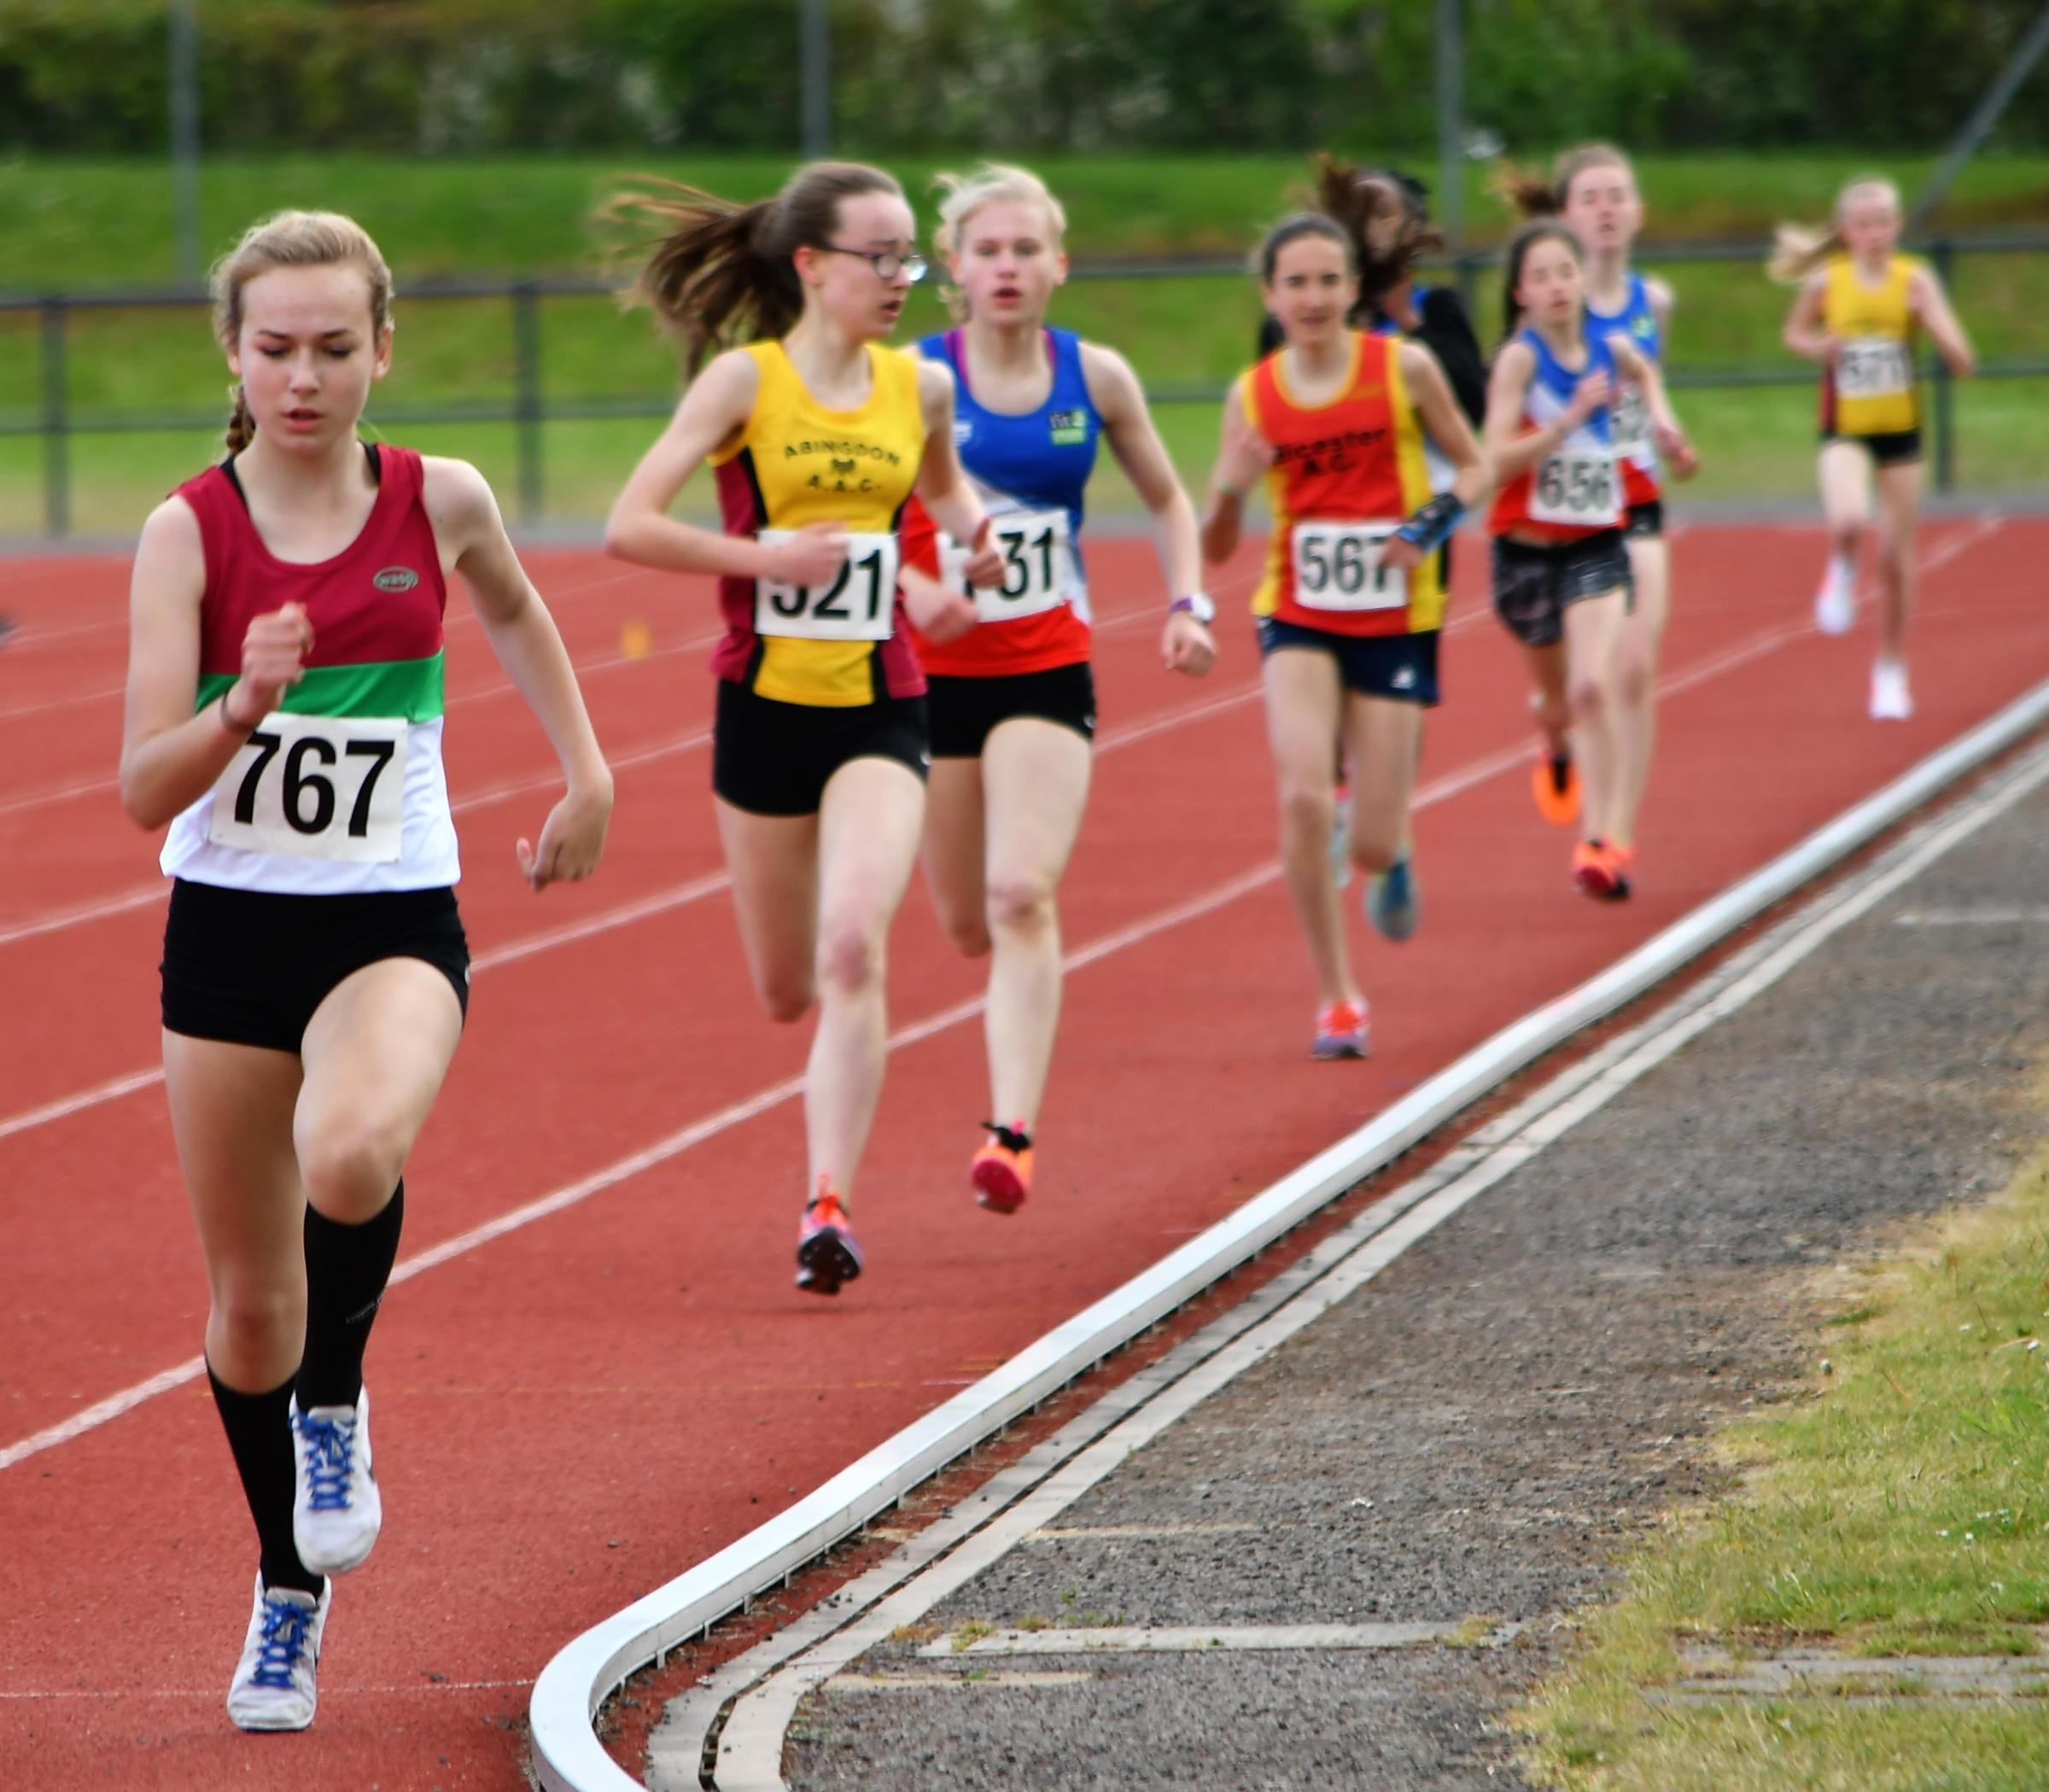 LEADING THE WAY: Alex Scrivener, of Banbury Harriers, clinched double middle-distance gold at Horspath, with Abingdon's Mieke Bedlington and Oxford City's Daisy Palmer filling the other two positions in the under 15 girls' 800m and 1,500m